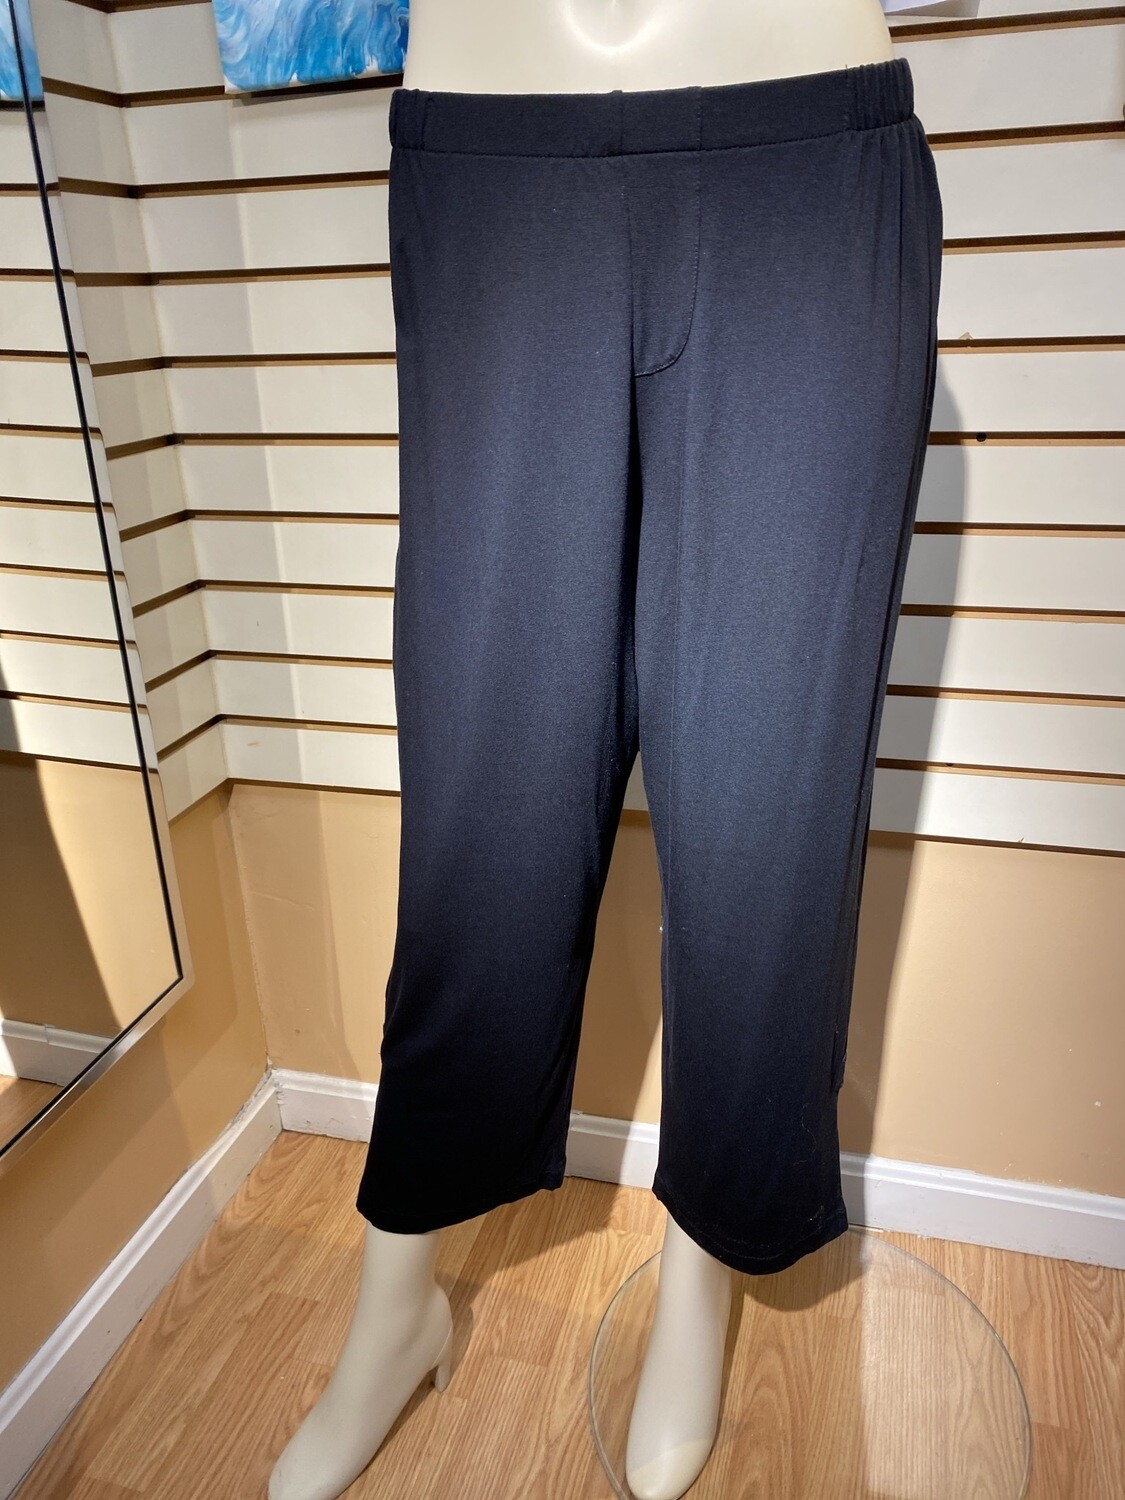 Major Deal Inside Out Made In USA. Modal Split Ankle Comfiest Of Pant. Blk Small Fits Like 6/8